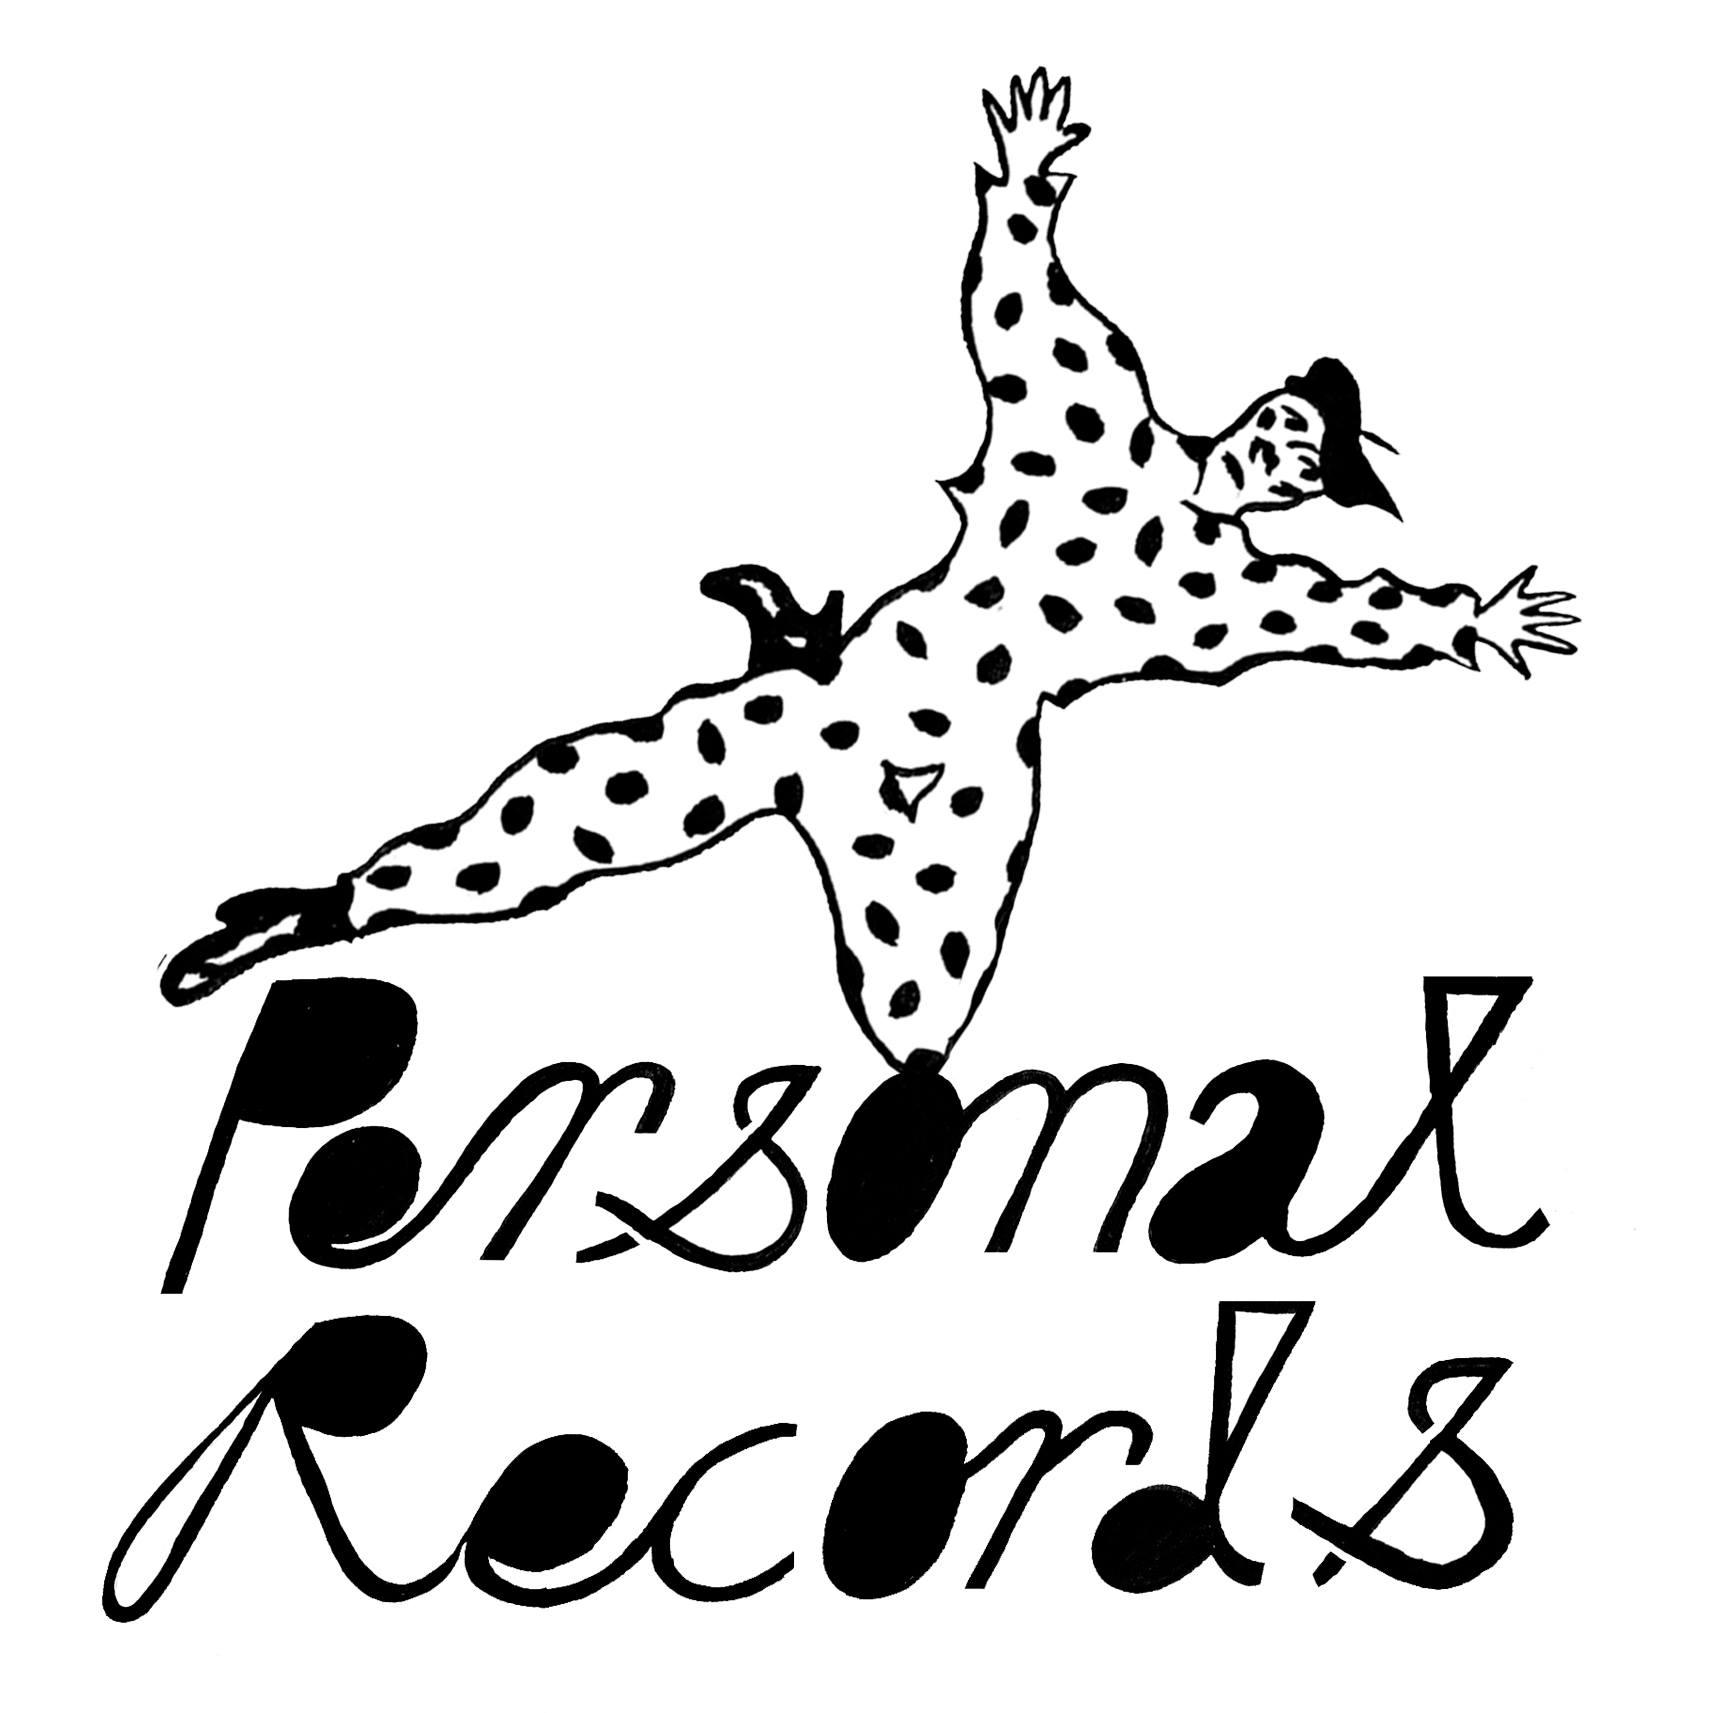 Personal Records. Logo design by JGJG